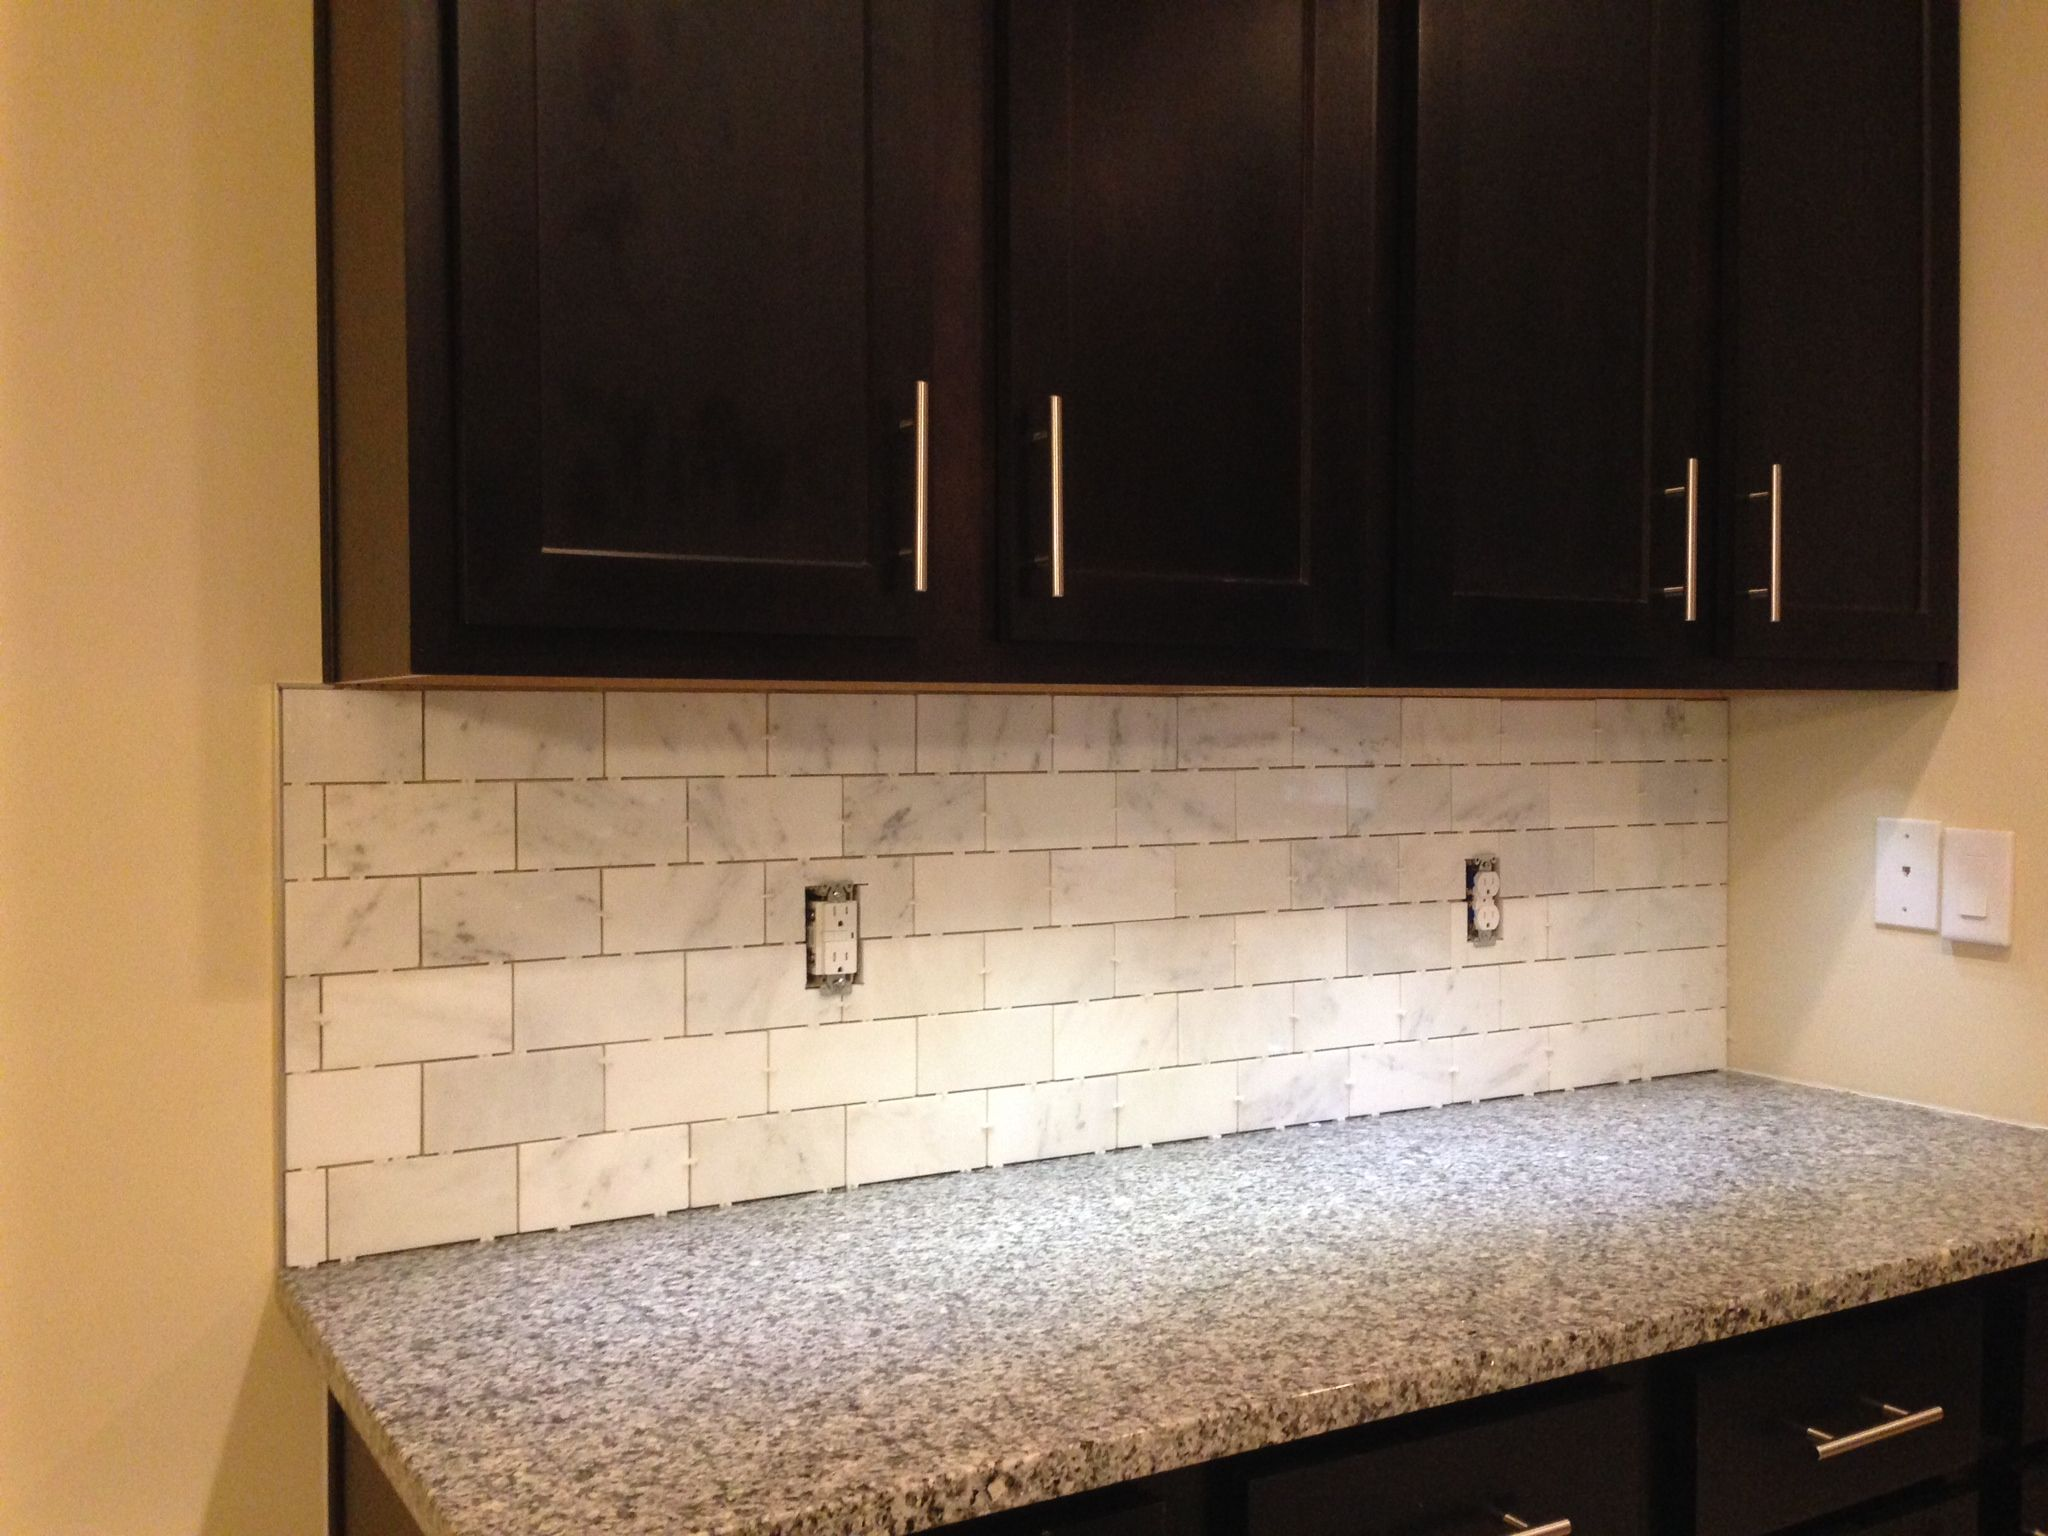 kitchen backsplash edges schluter trim on a mable tile incomplete needs grout 2210